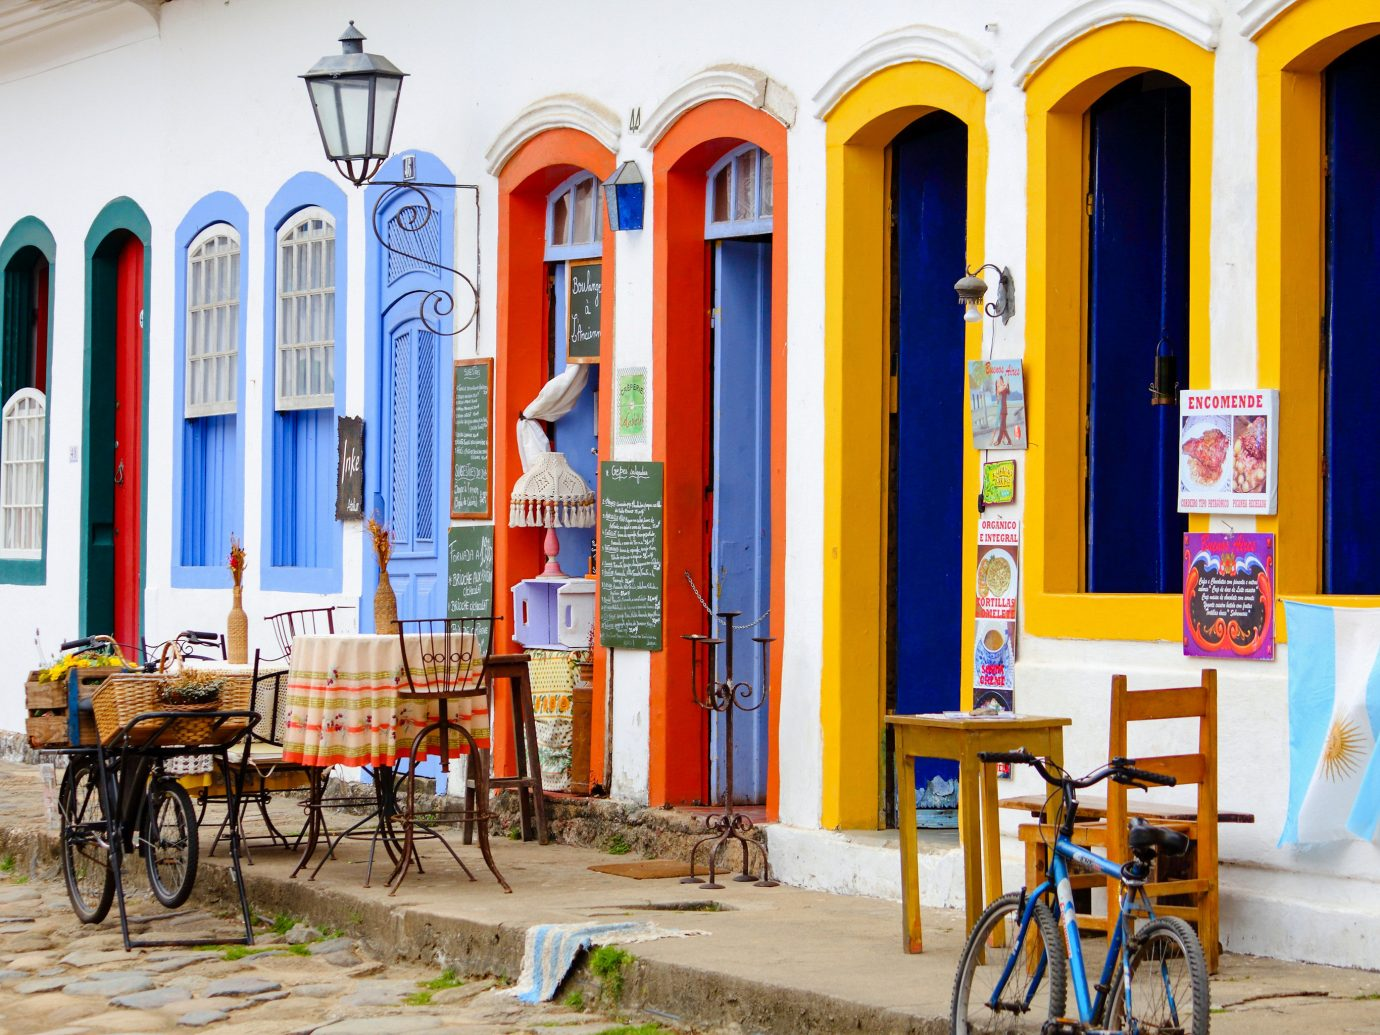 Beaches Brazil Trip Ideas outdoor ground bicycle yellow window parked facade real estate street house recreation City cart